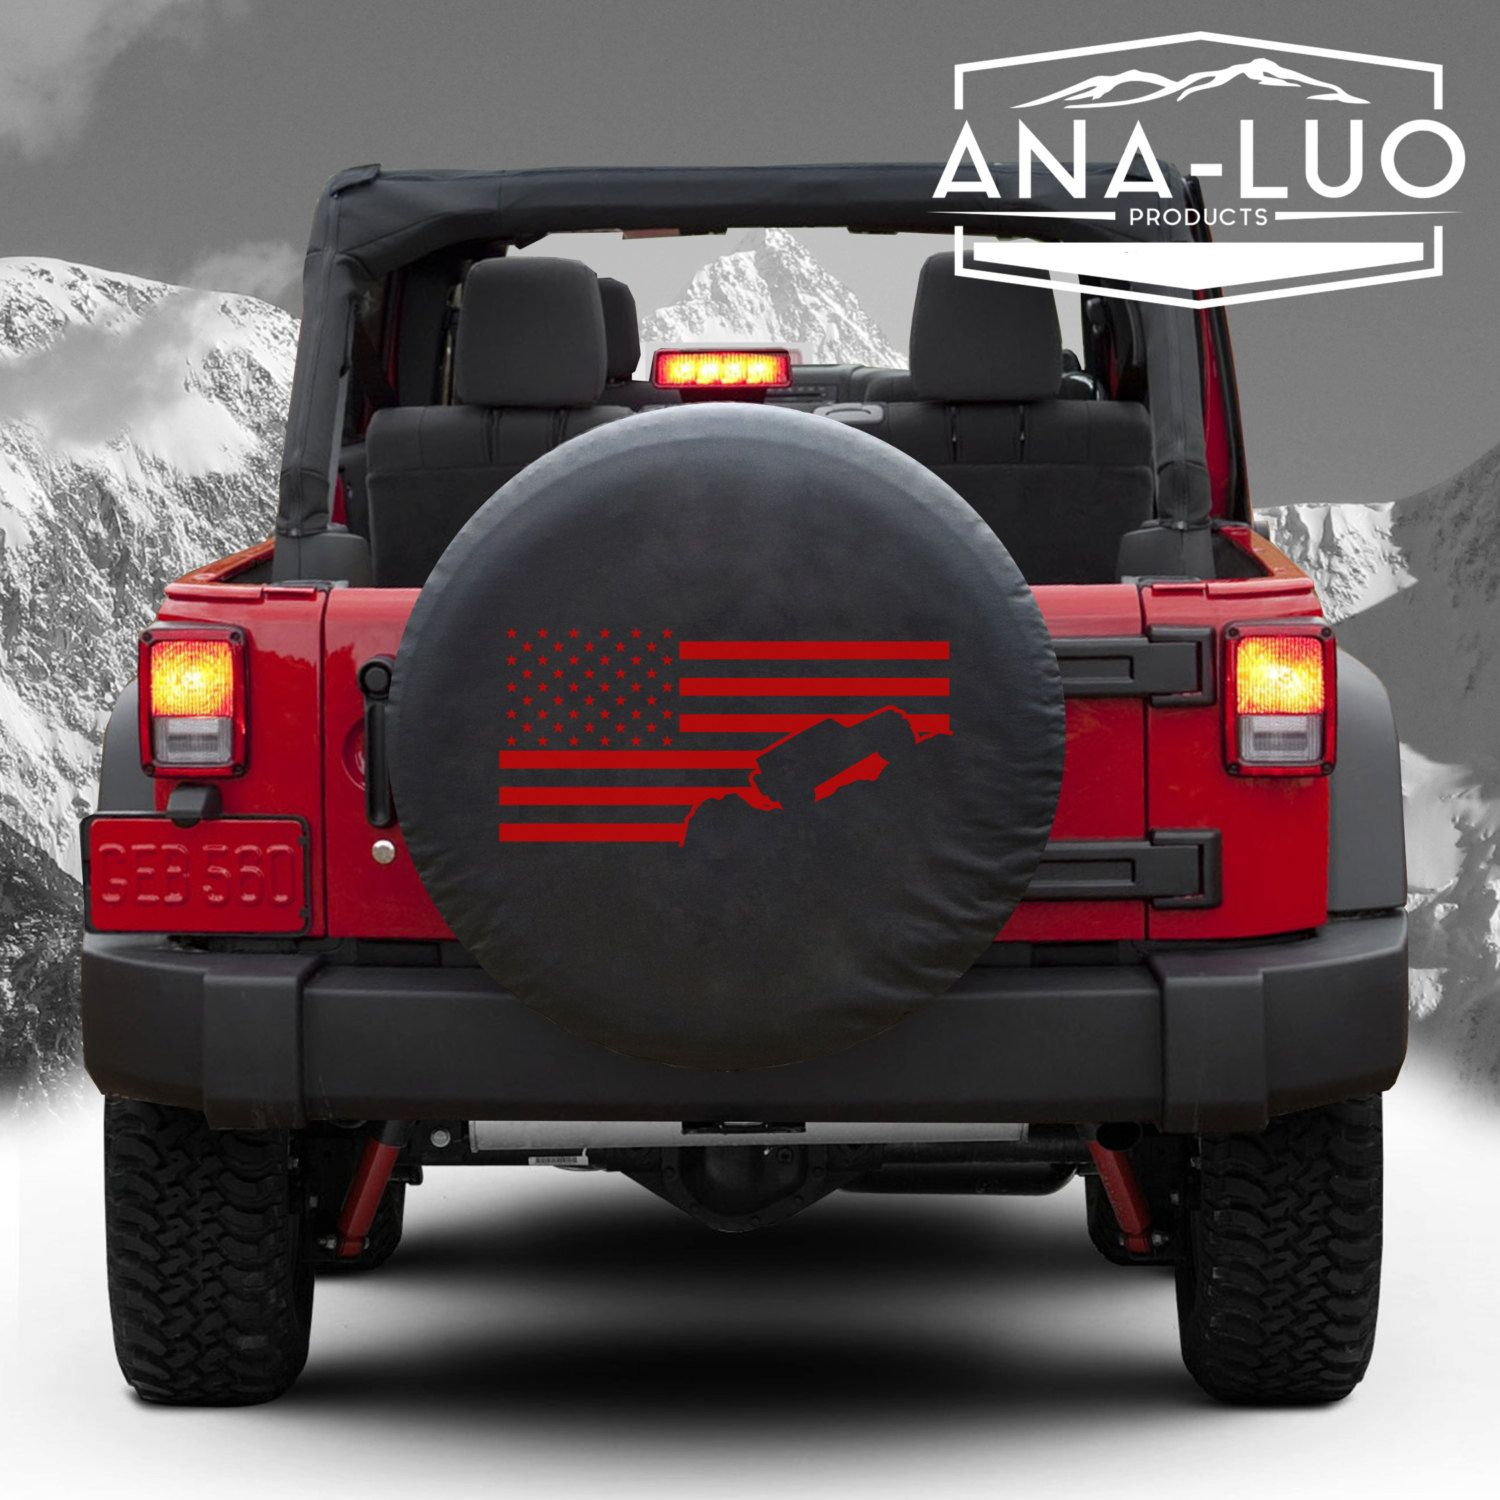 Jeep Tire Covers For Wrangler Bing In 2020 Jeep Tire Cover